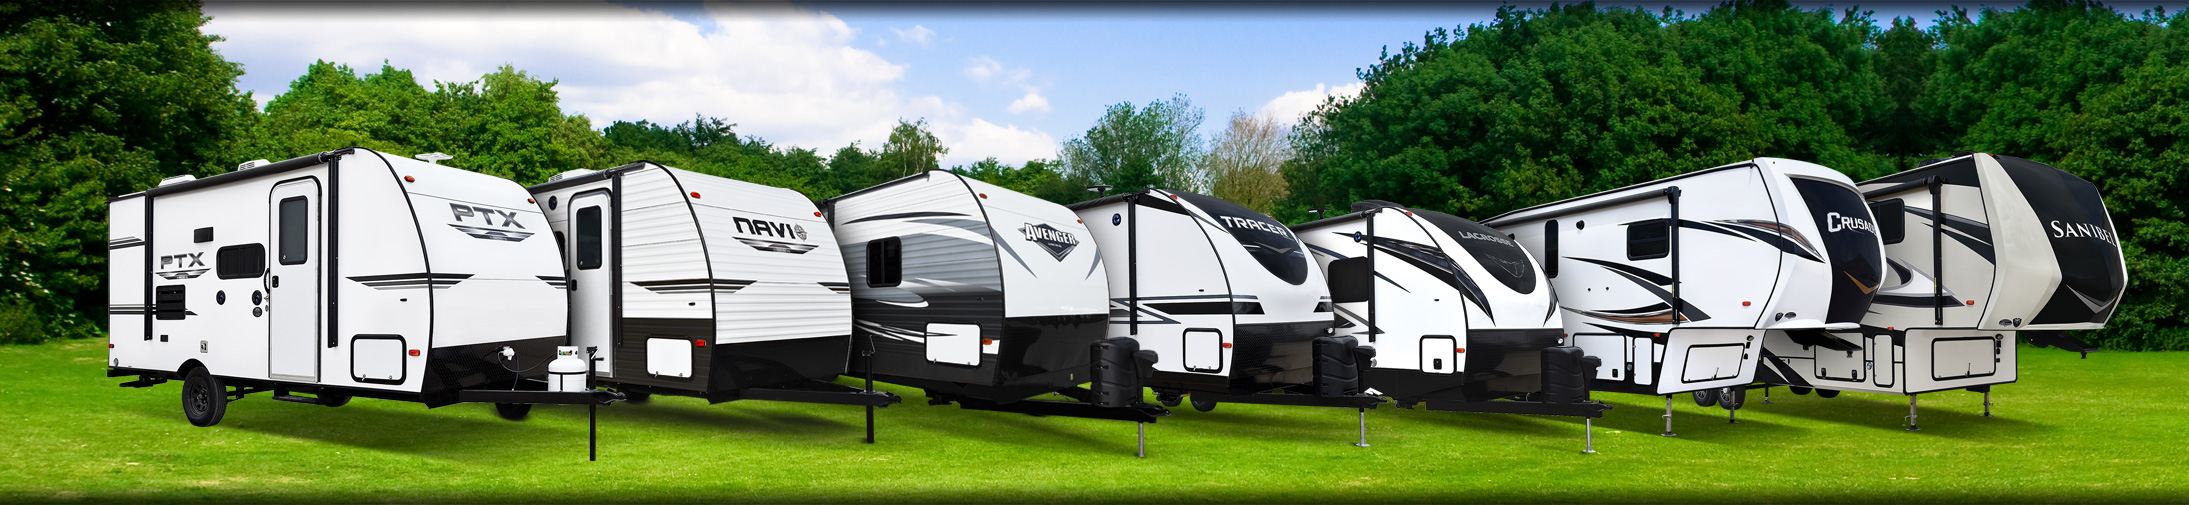 Owners | Prime Time Manufacturing - Manufacturer of Travel Trailers